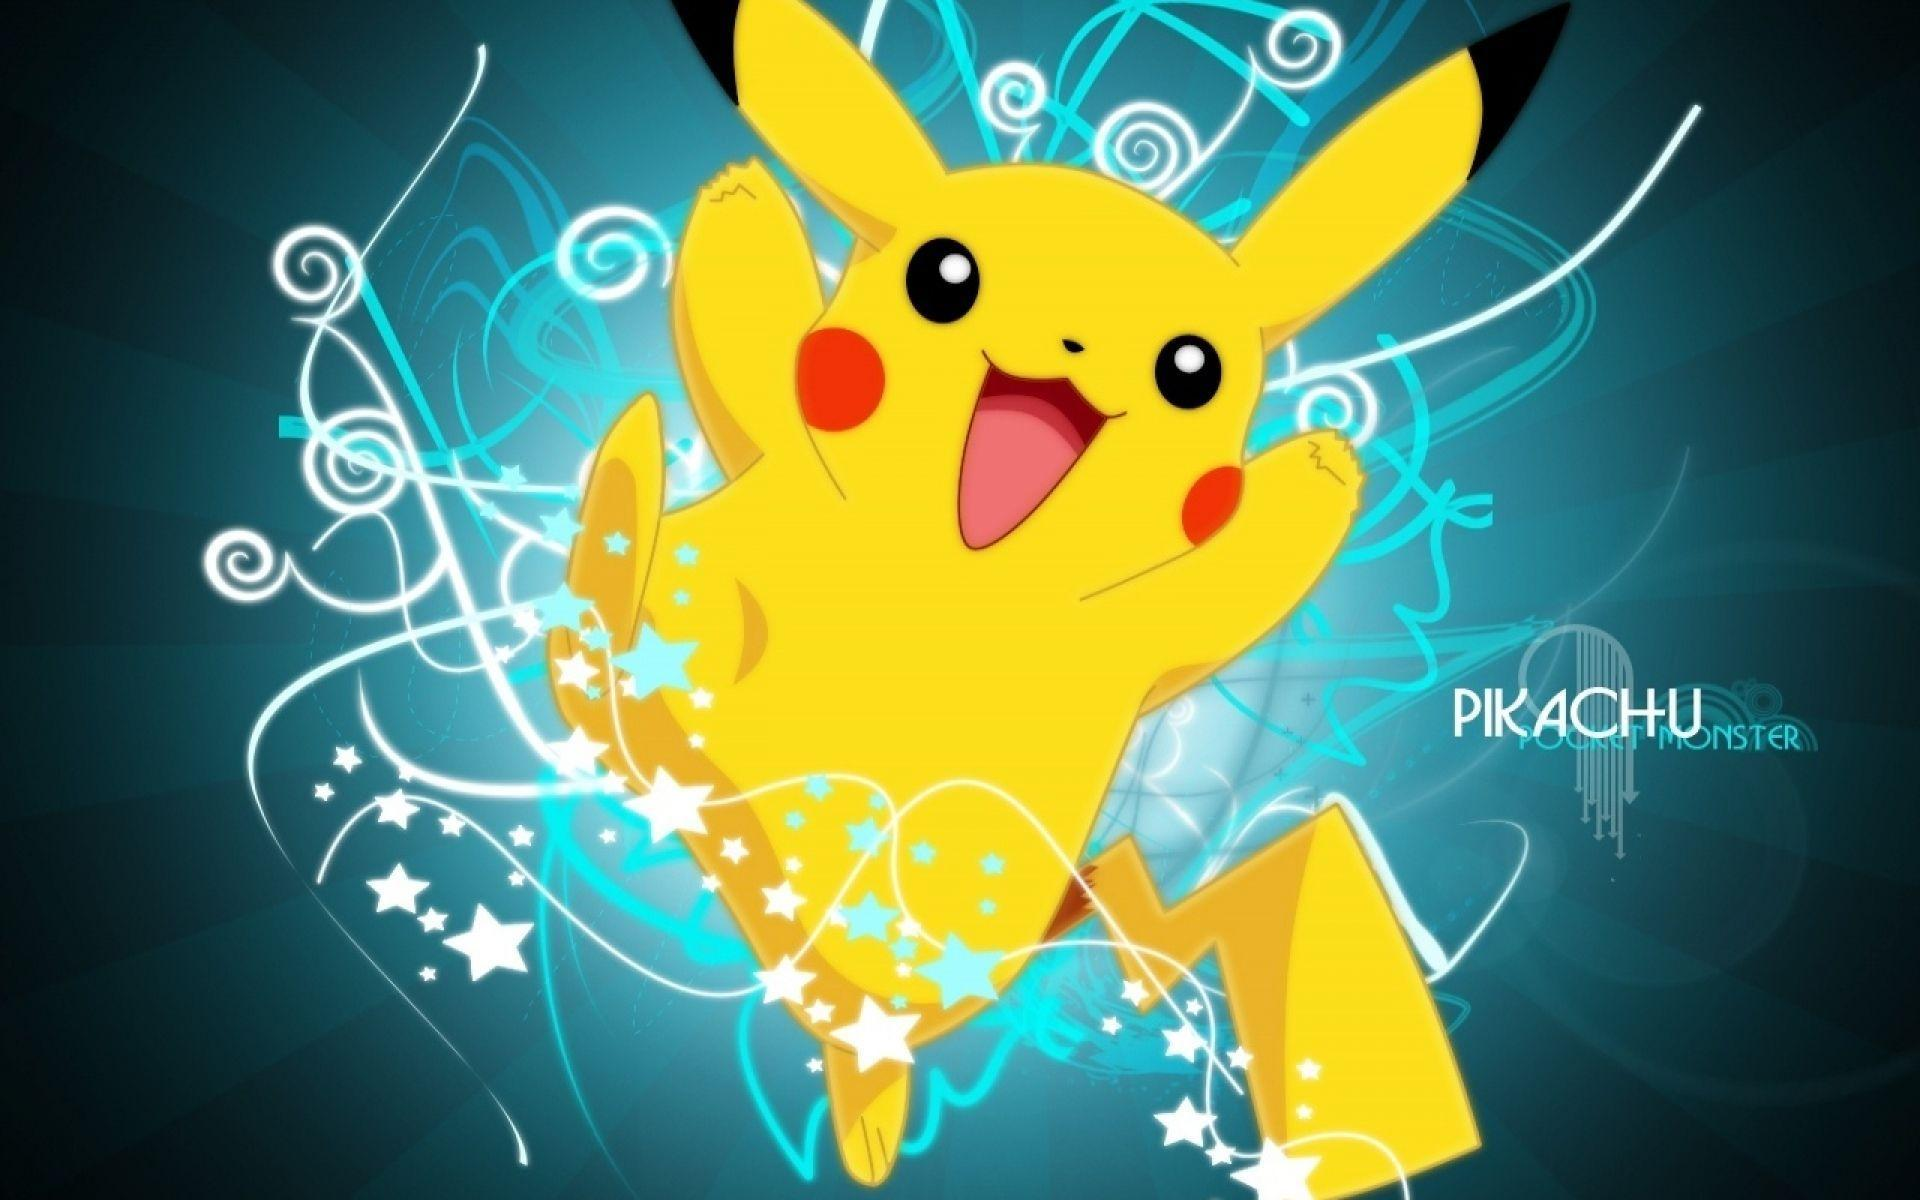 Pokemon 1080p WallPaper Pack - 34263-hd-hd-pokemon-wallpapers ...